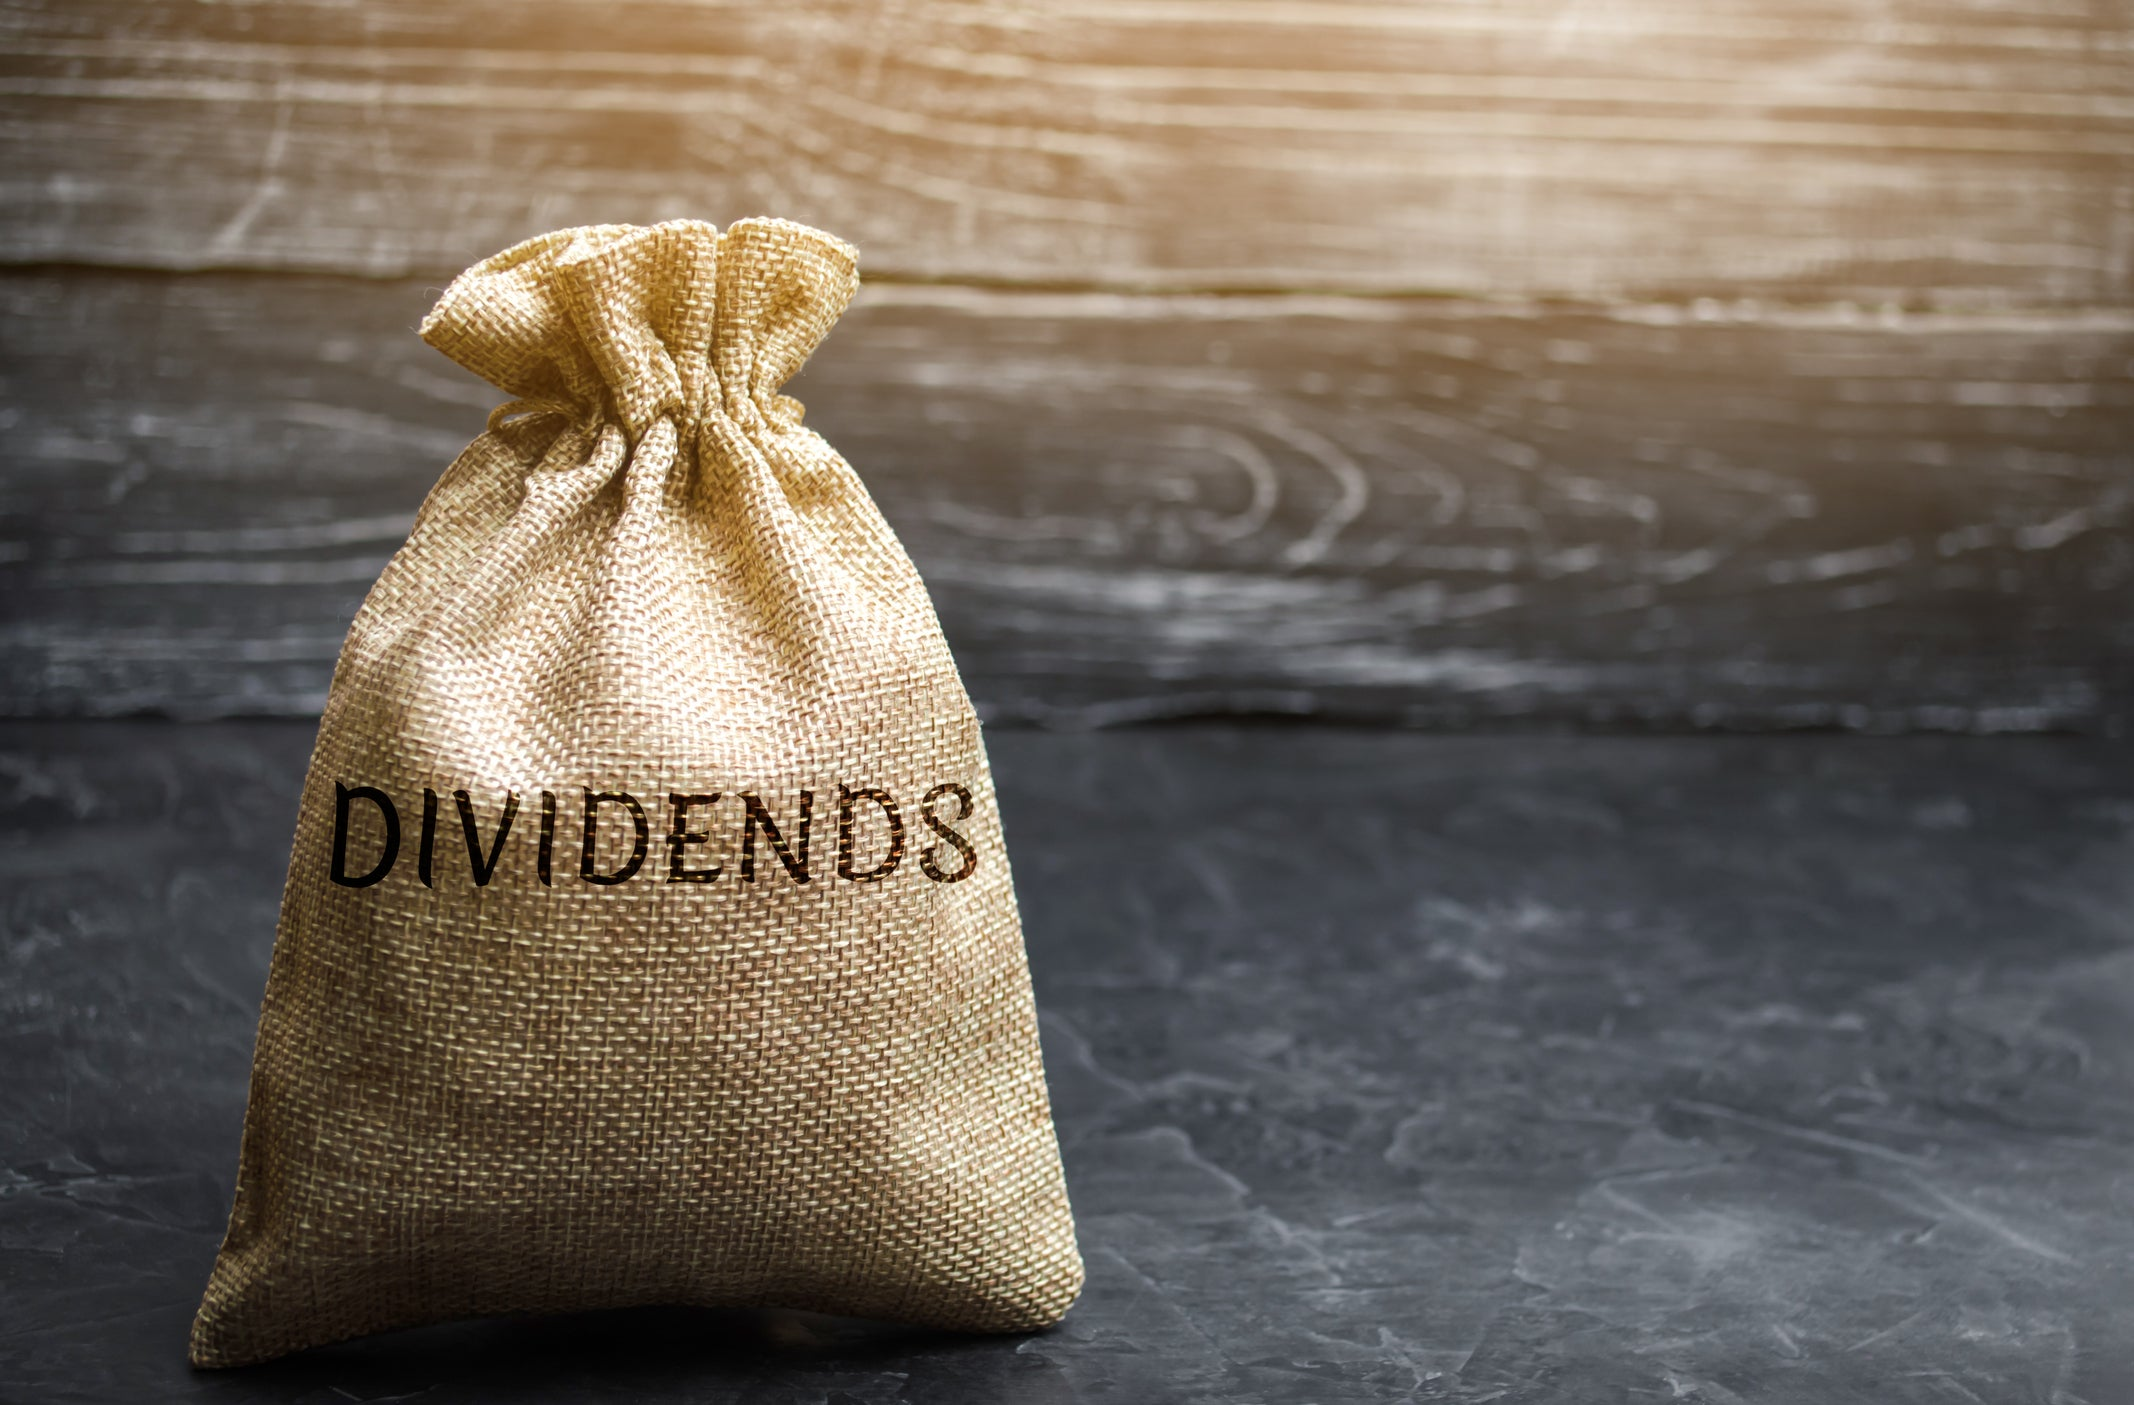 5 Stocks to Buy With Dividends Yielding More Than 5%